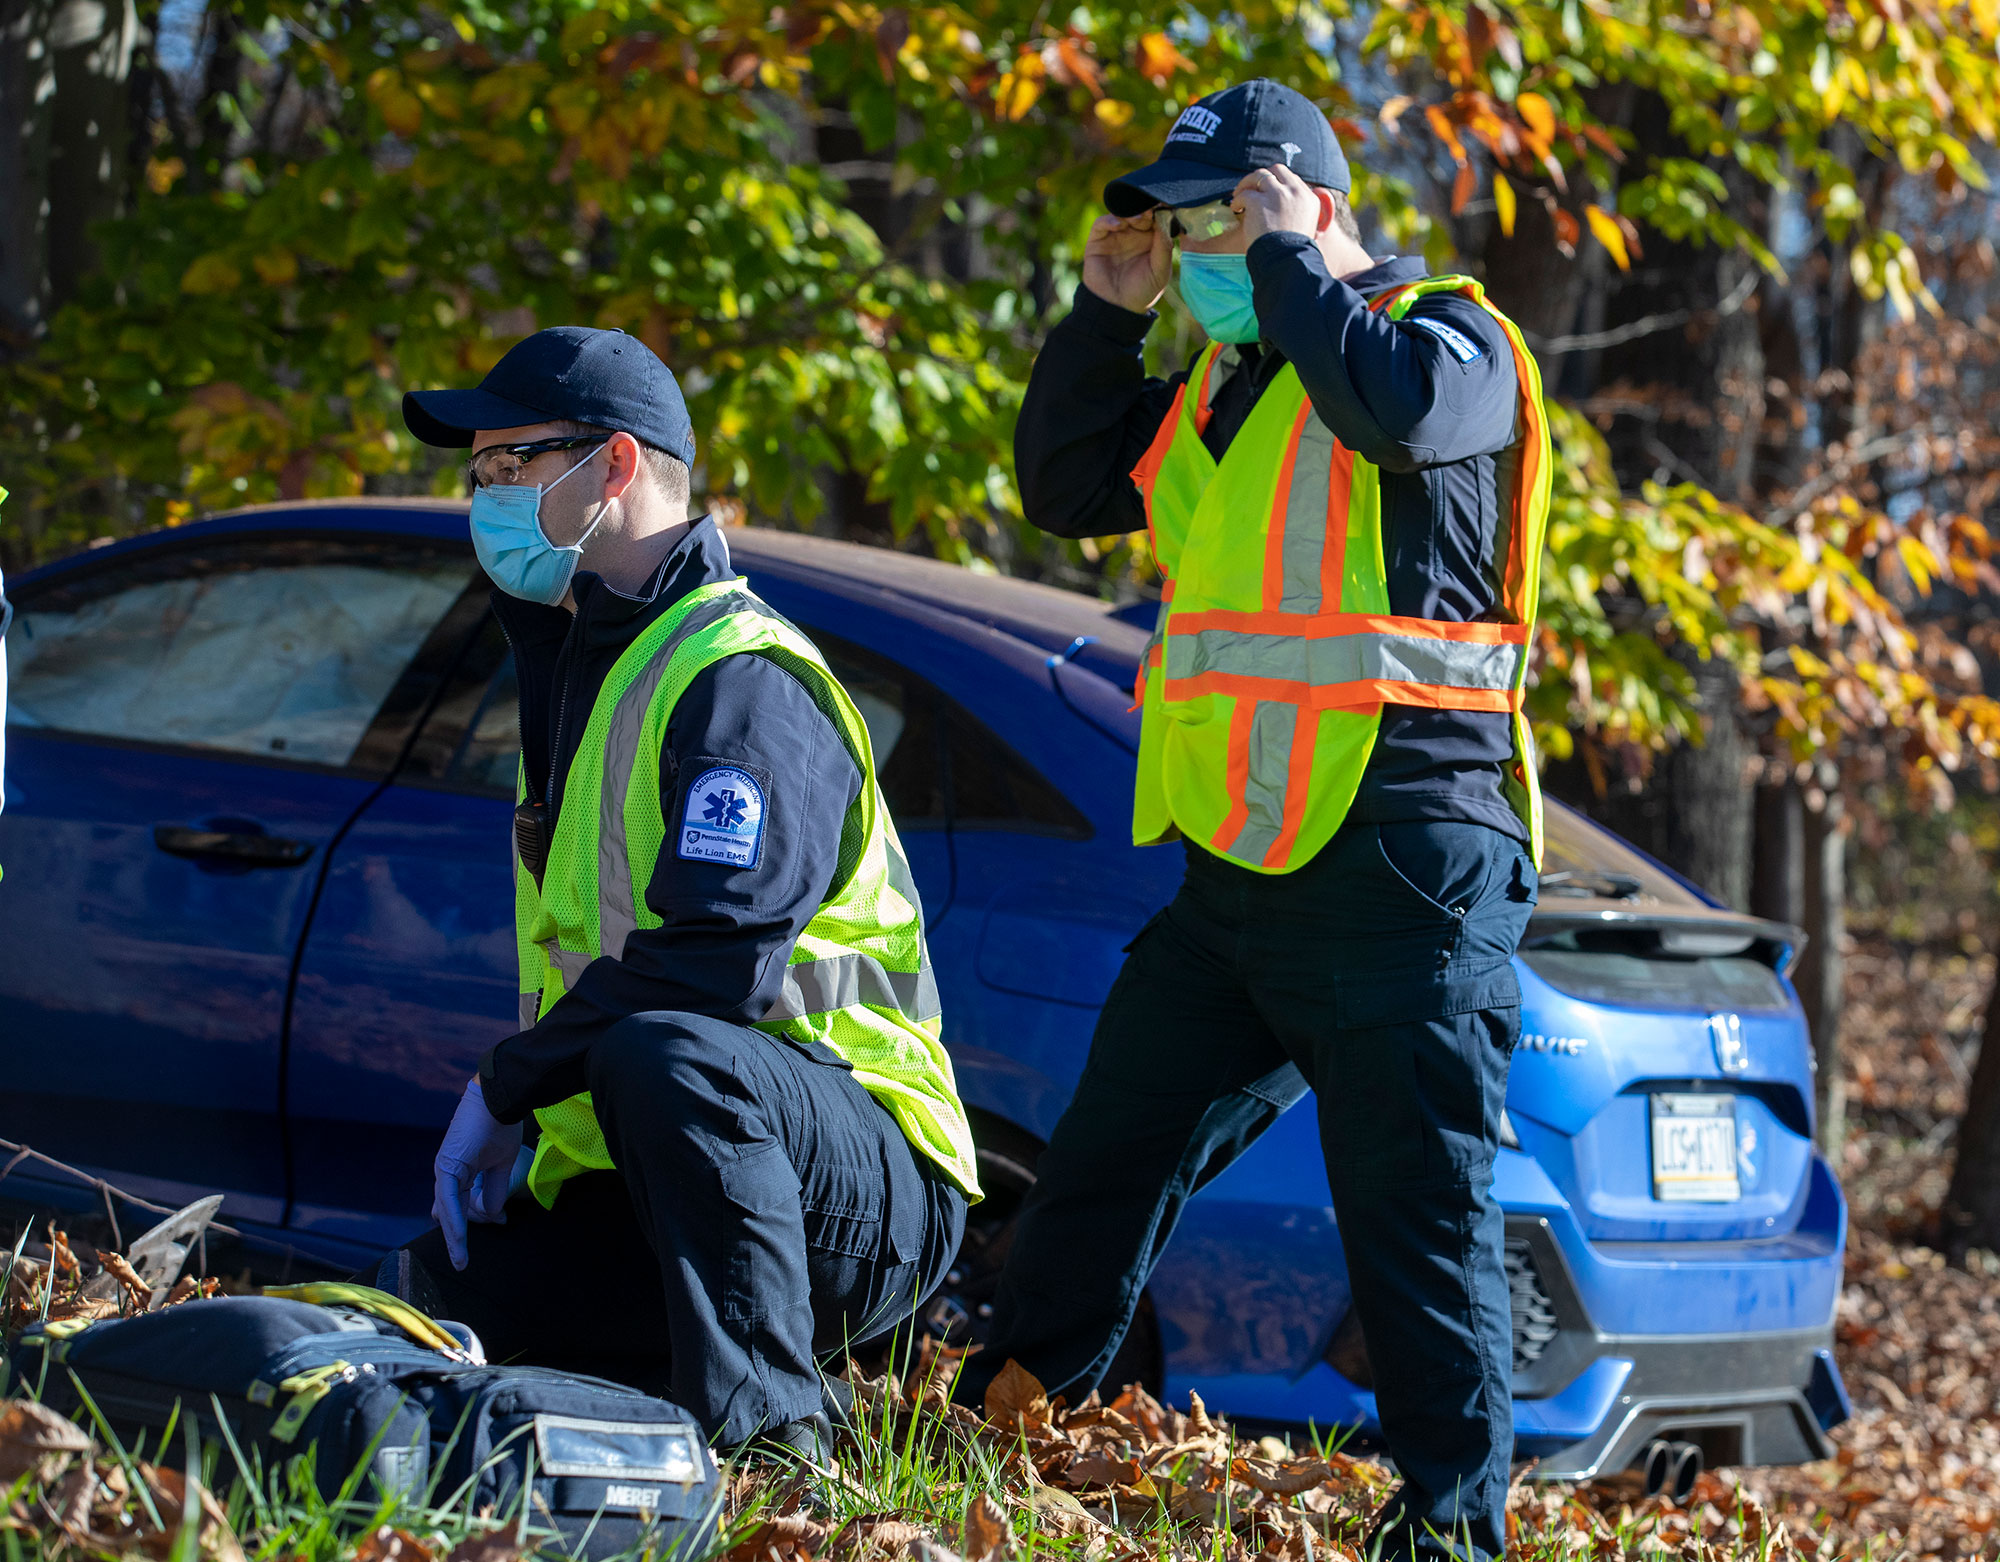 Penn State College of Medicine EMS Fellowship trainees are seen participating in a mock training exercise. One trainee is kneeling and one is standing in front of a blue car with trees in the background.